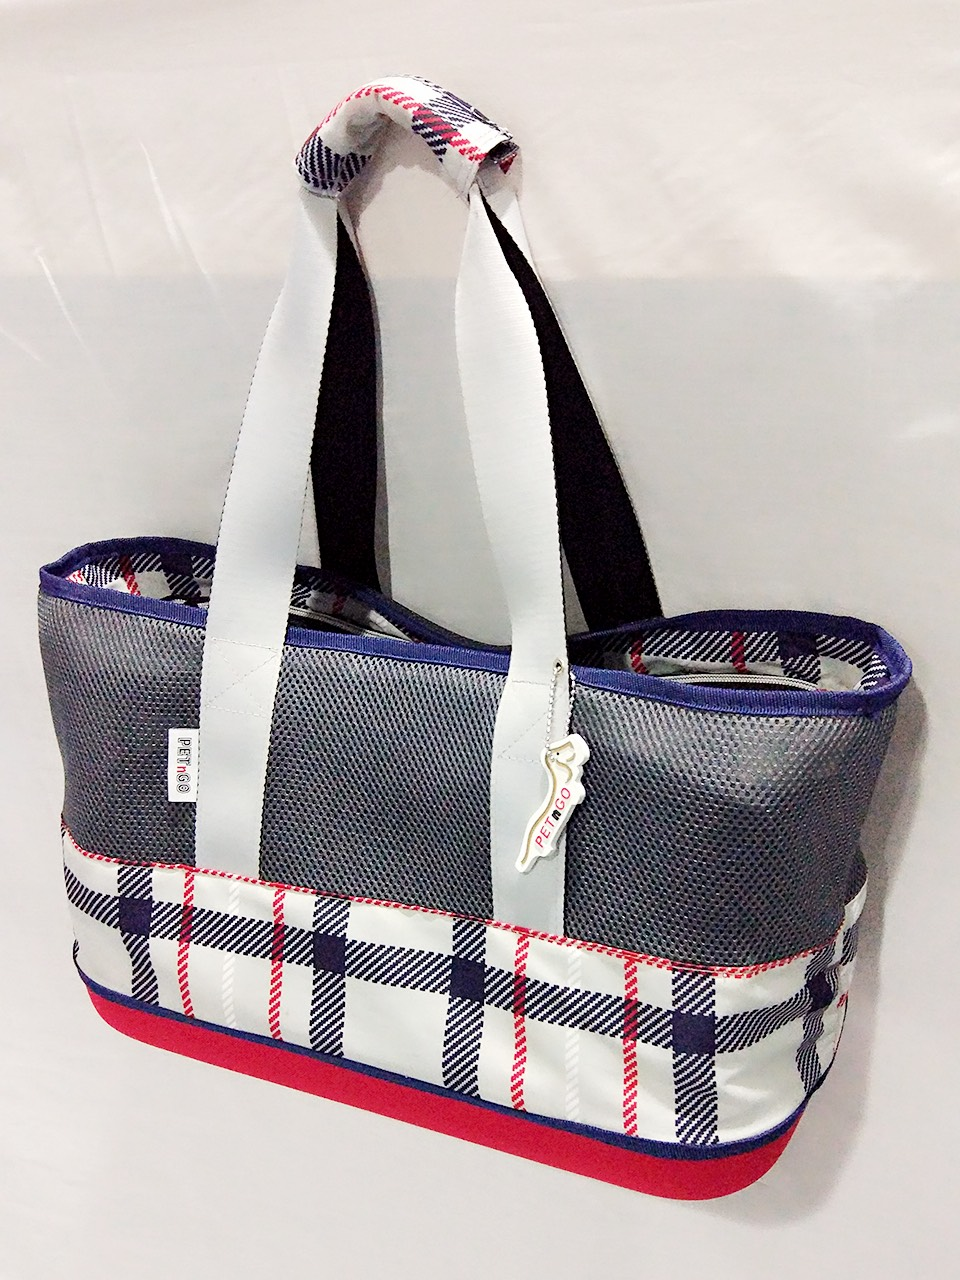 Tote Bag For Easy To Carry